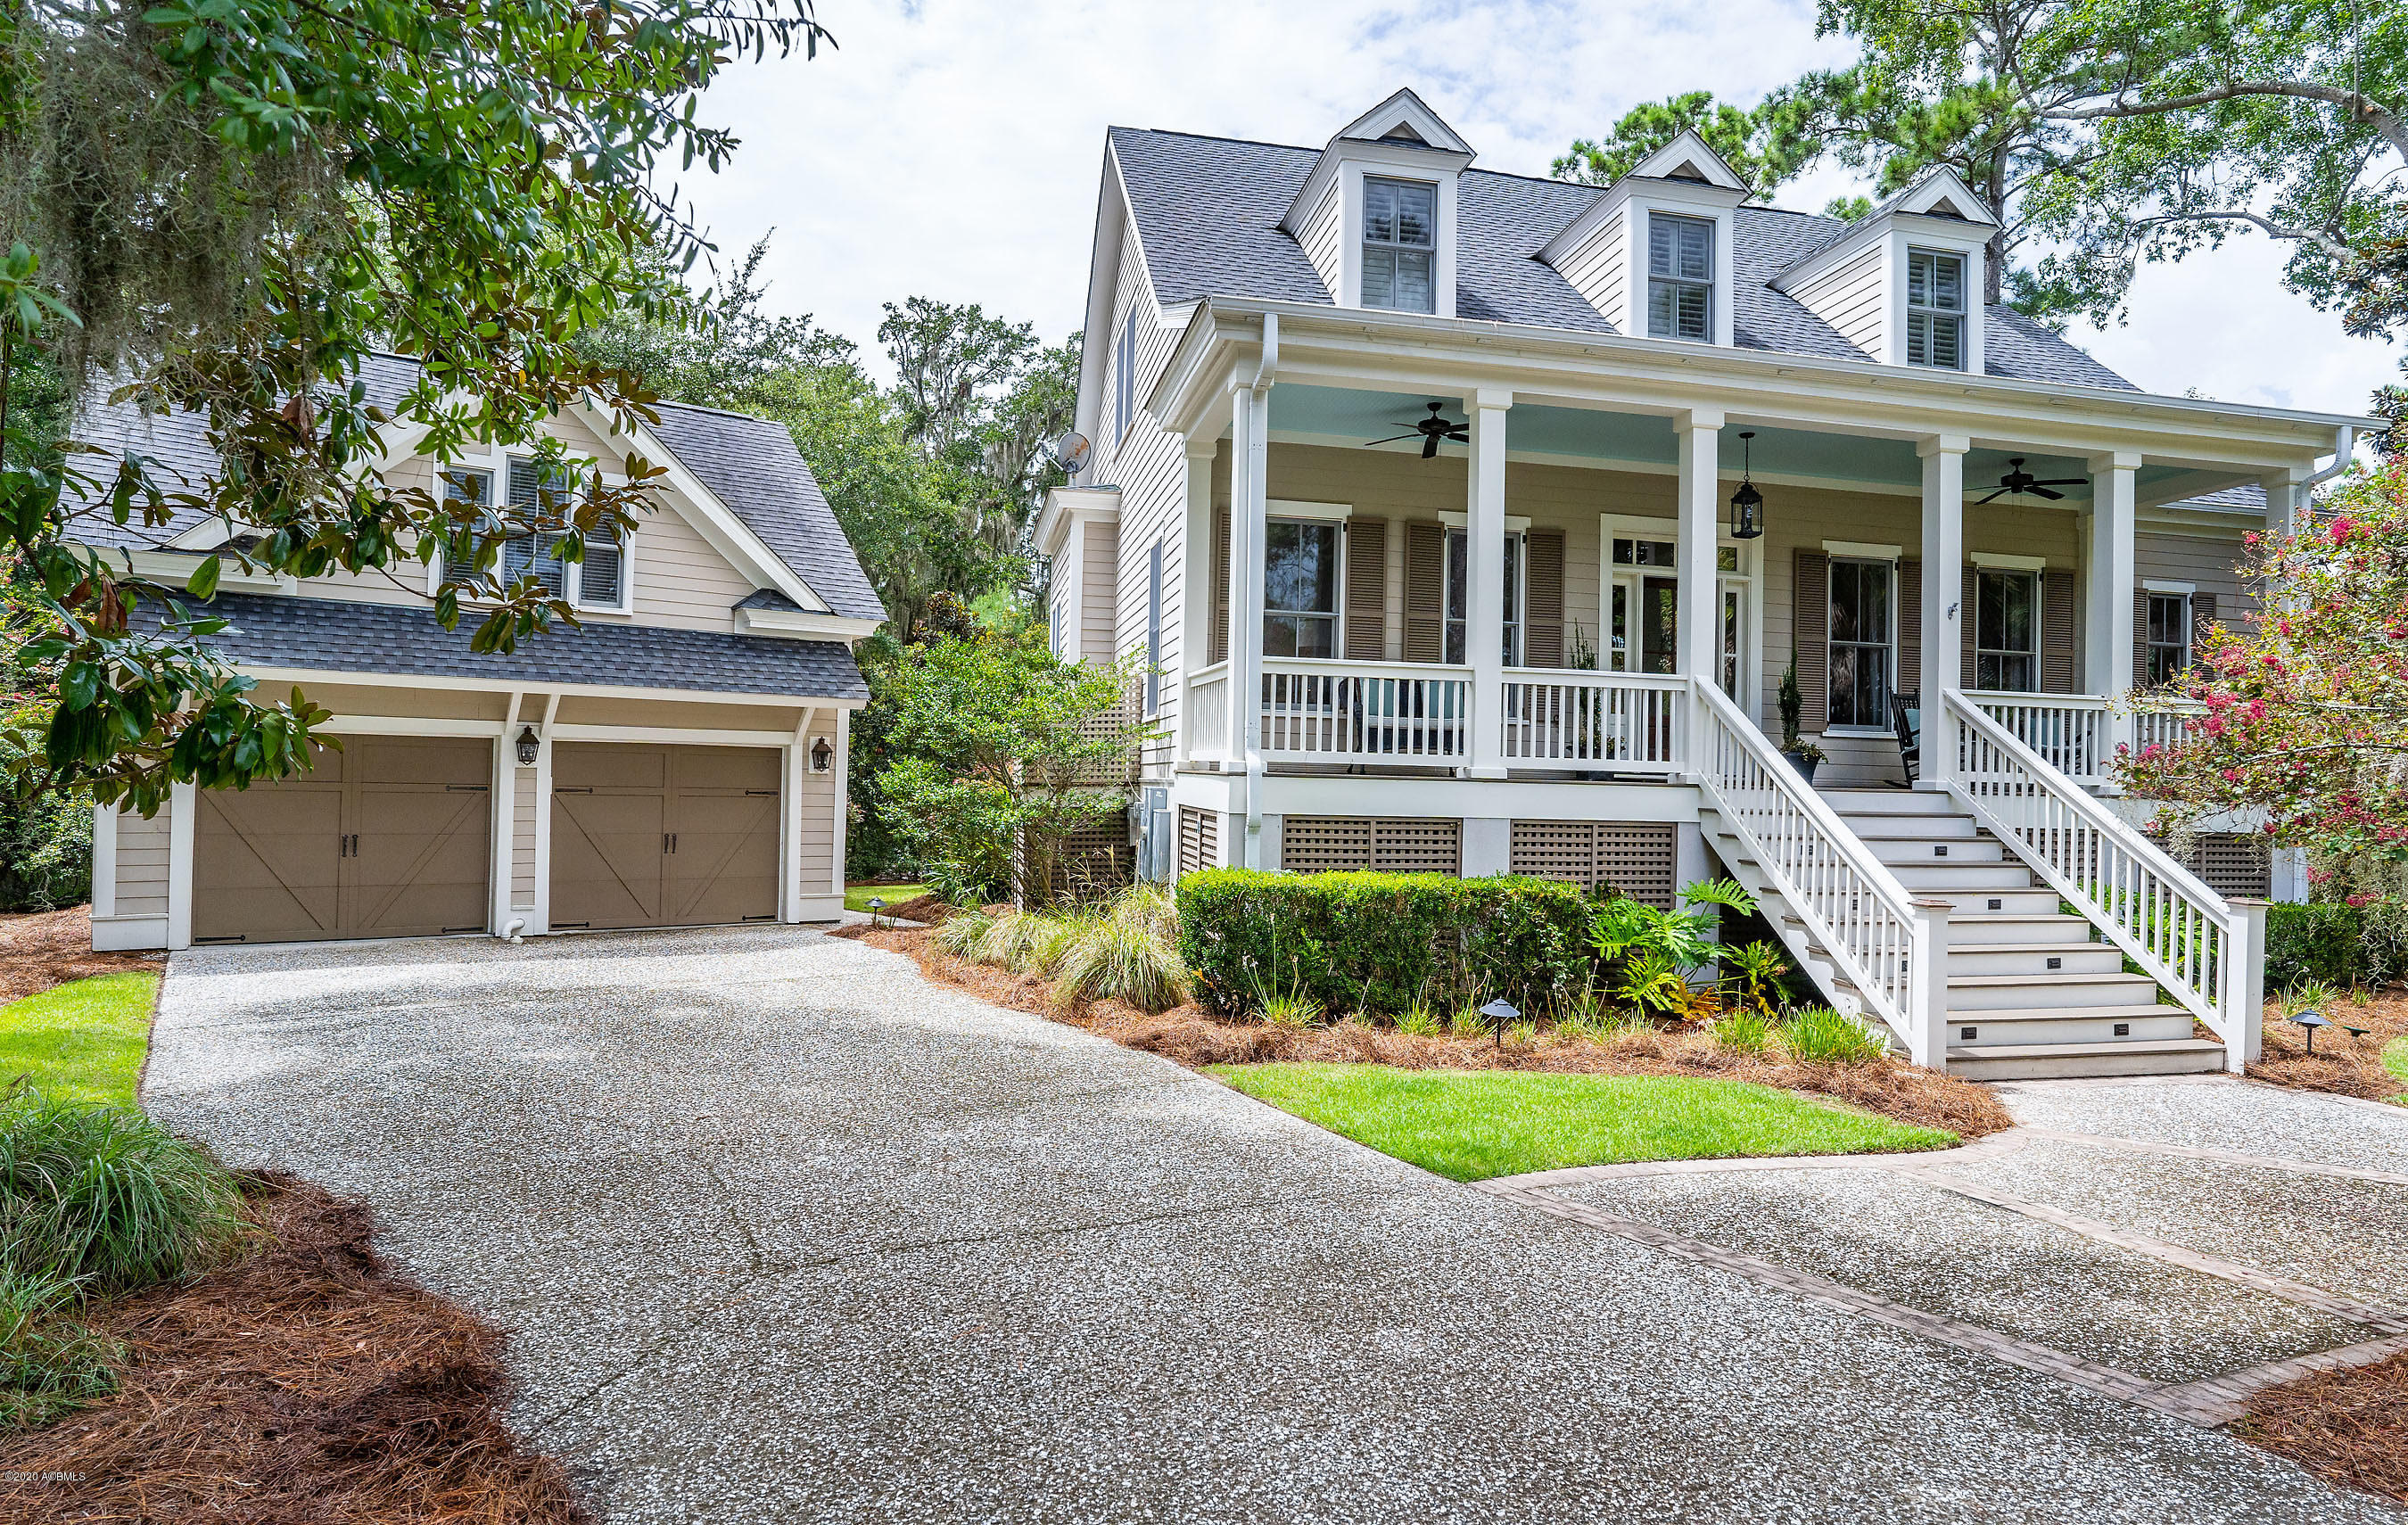 Photo of 5 St Charles Place, Beaufort, SC 29907